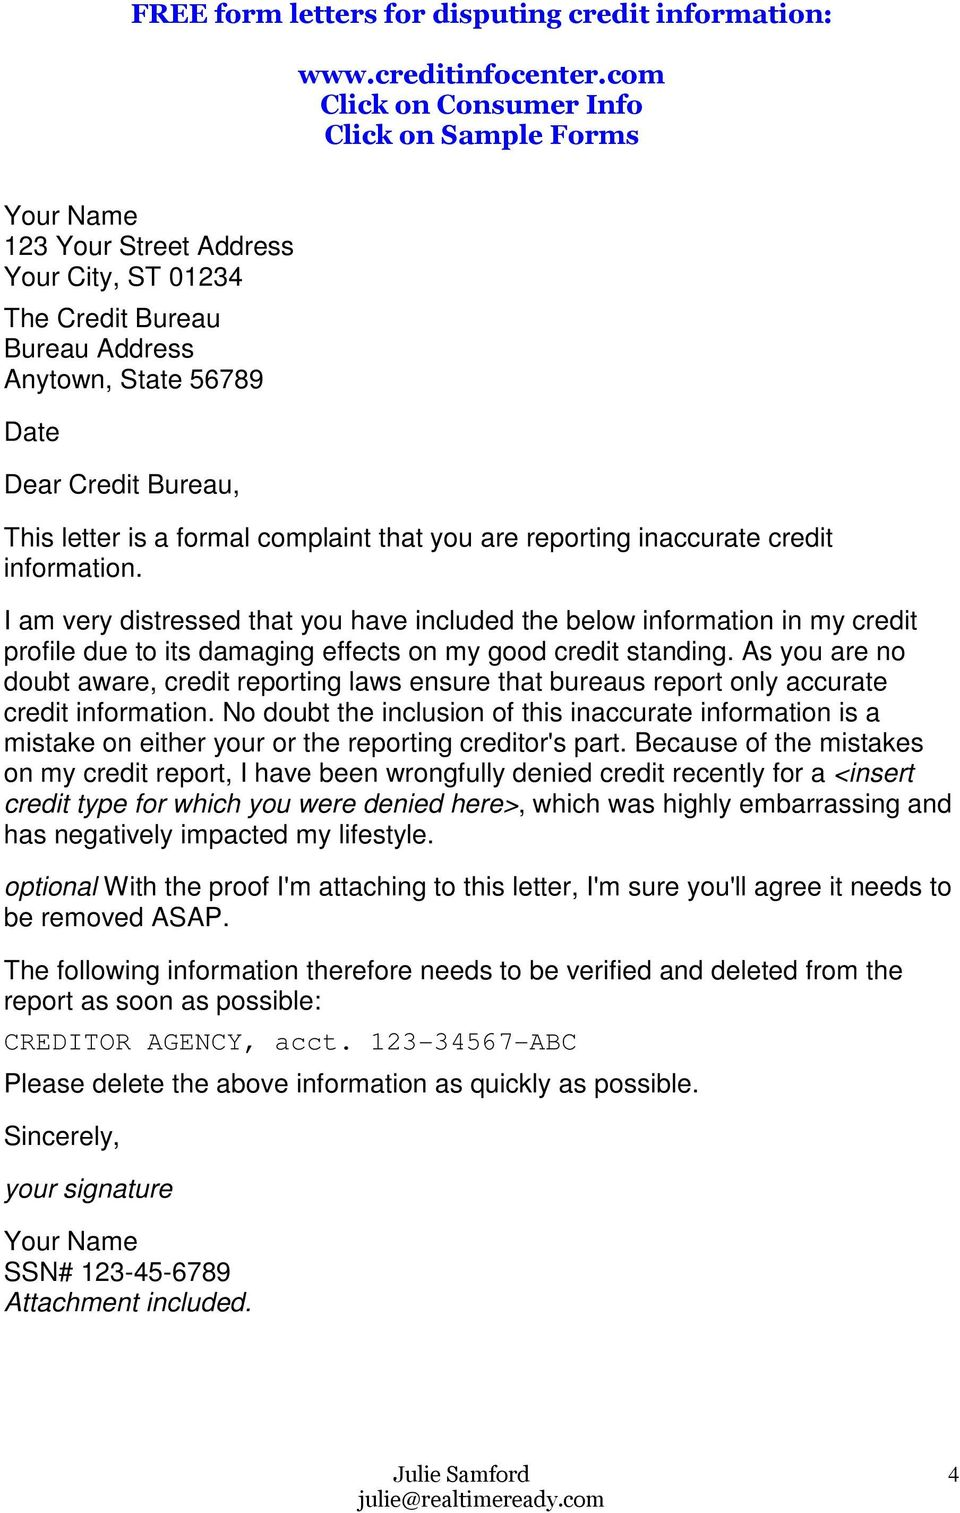 formal complaint that you are reporting inaccurate credit information.